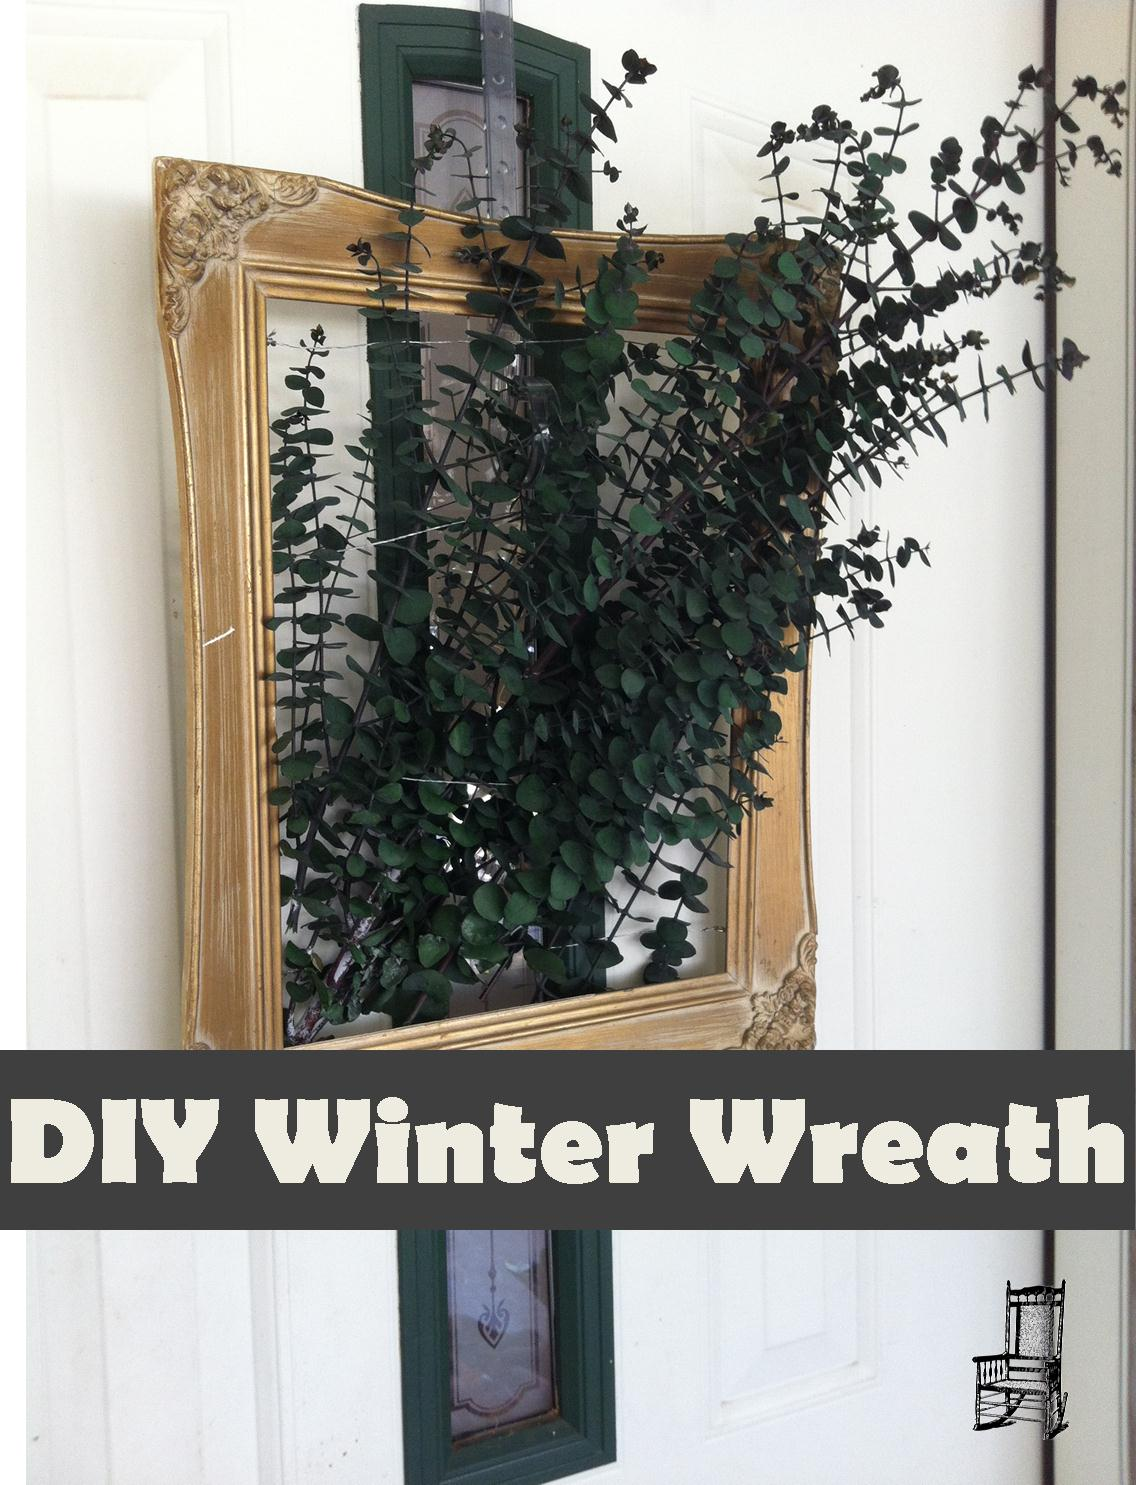 DIY Winter Wreath from The Front Poarch